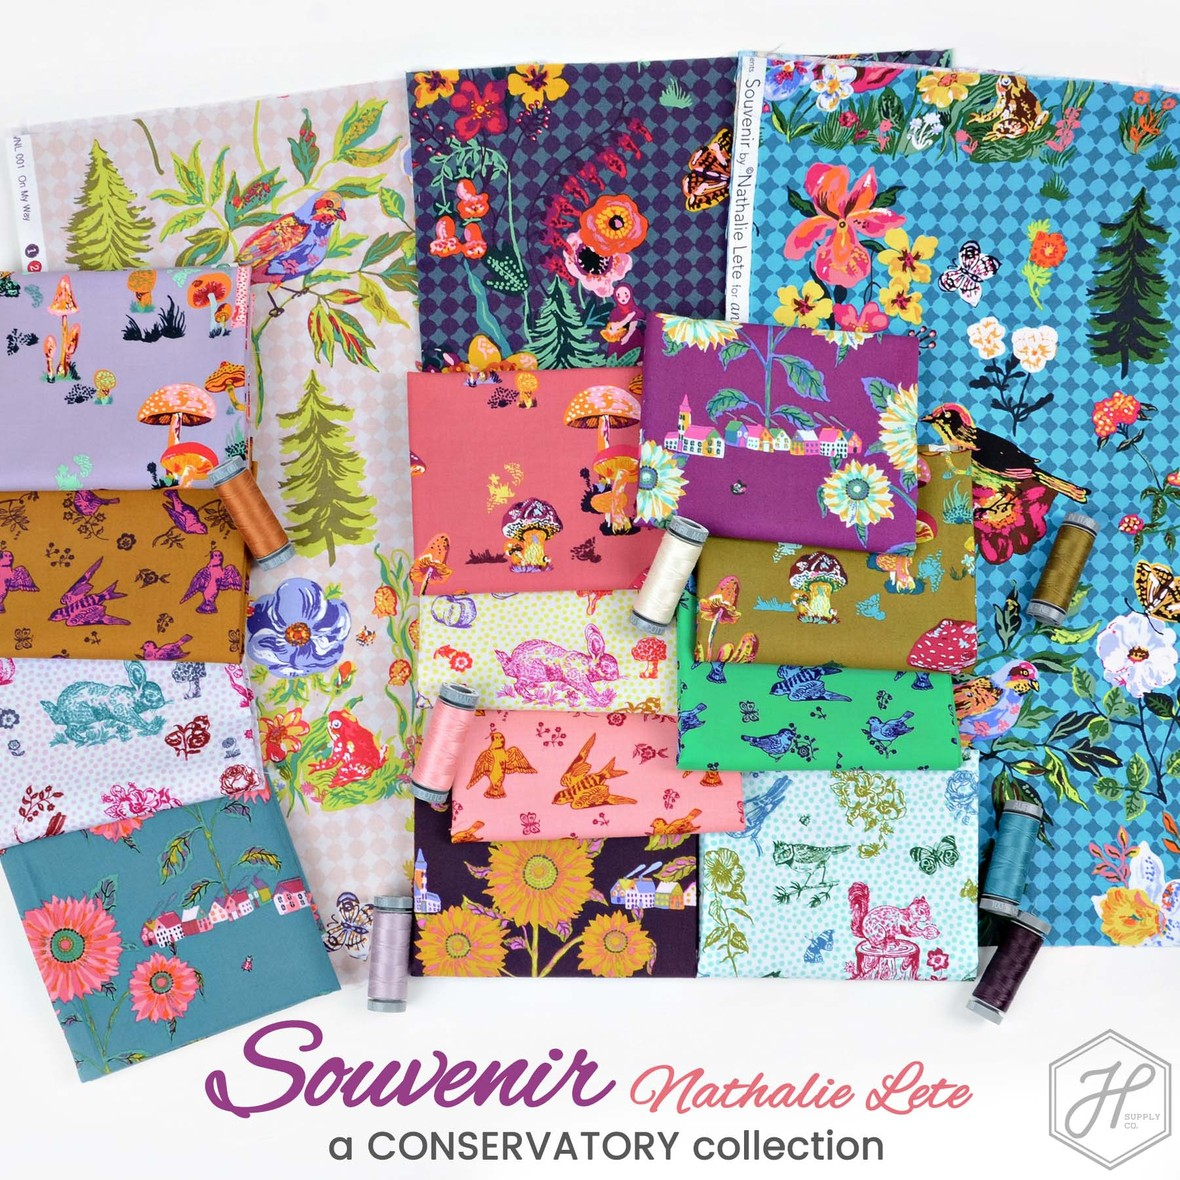 Souvenir Fabric Nathalie Lete for Conservatory at Hawthorne Supply Co